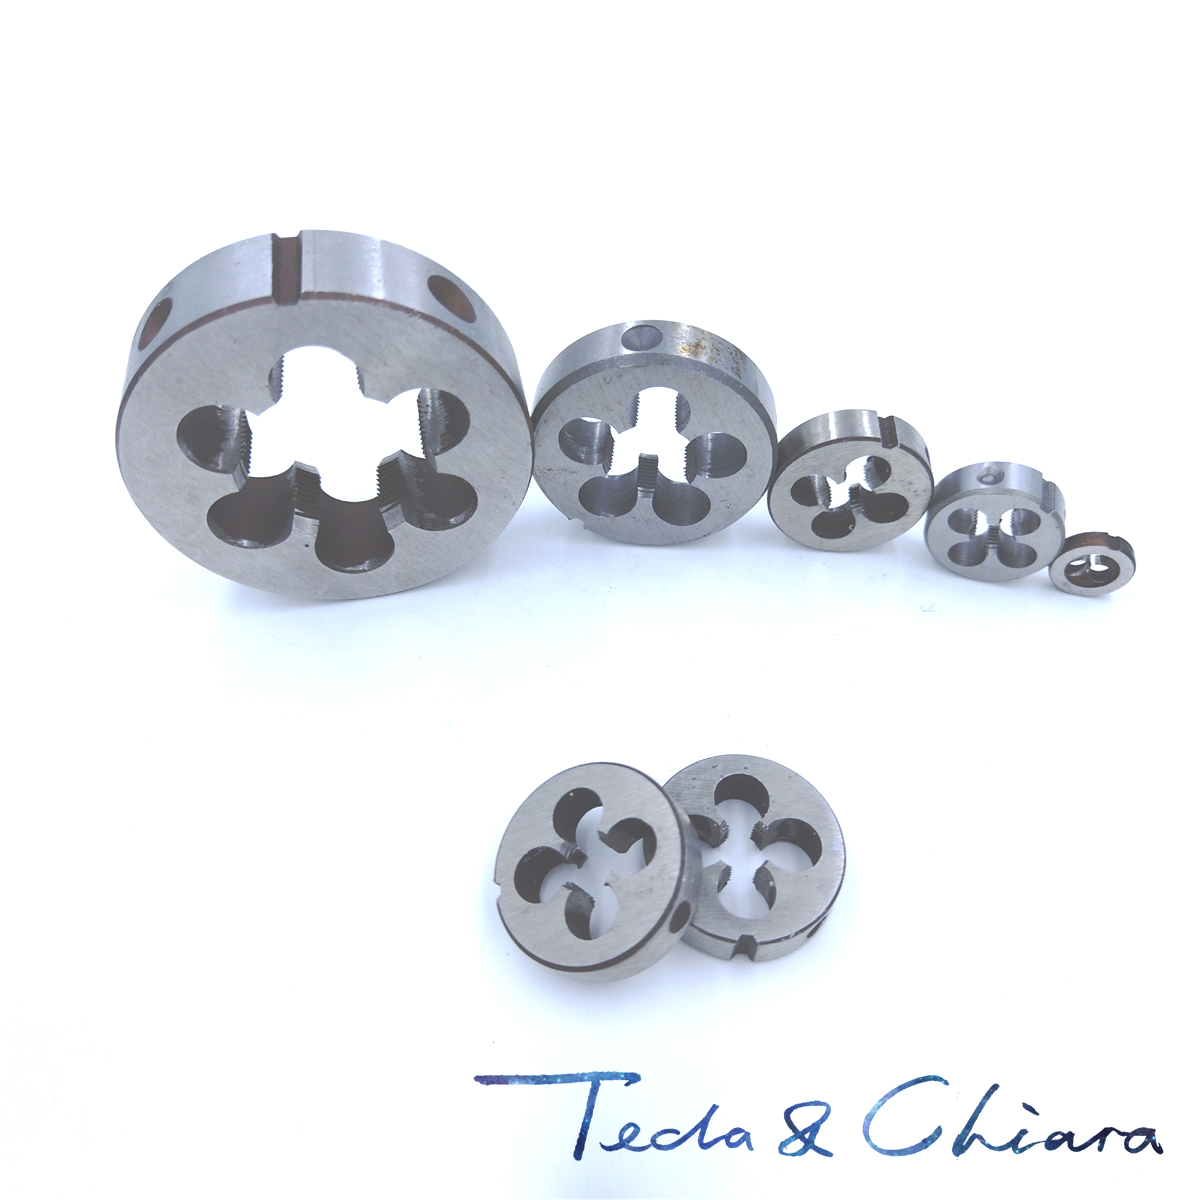 1Pc 3/8-16 3/8-18 3/8-20 3/8-24 3/8-27 UNS UN UNC UNF Right Hand Die Threading Tools Mold Machining 3/8 3/8